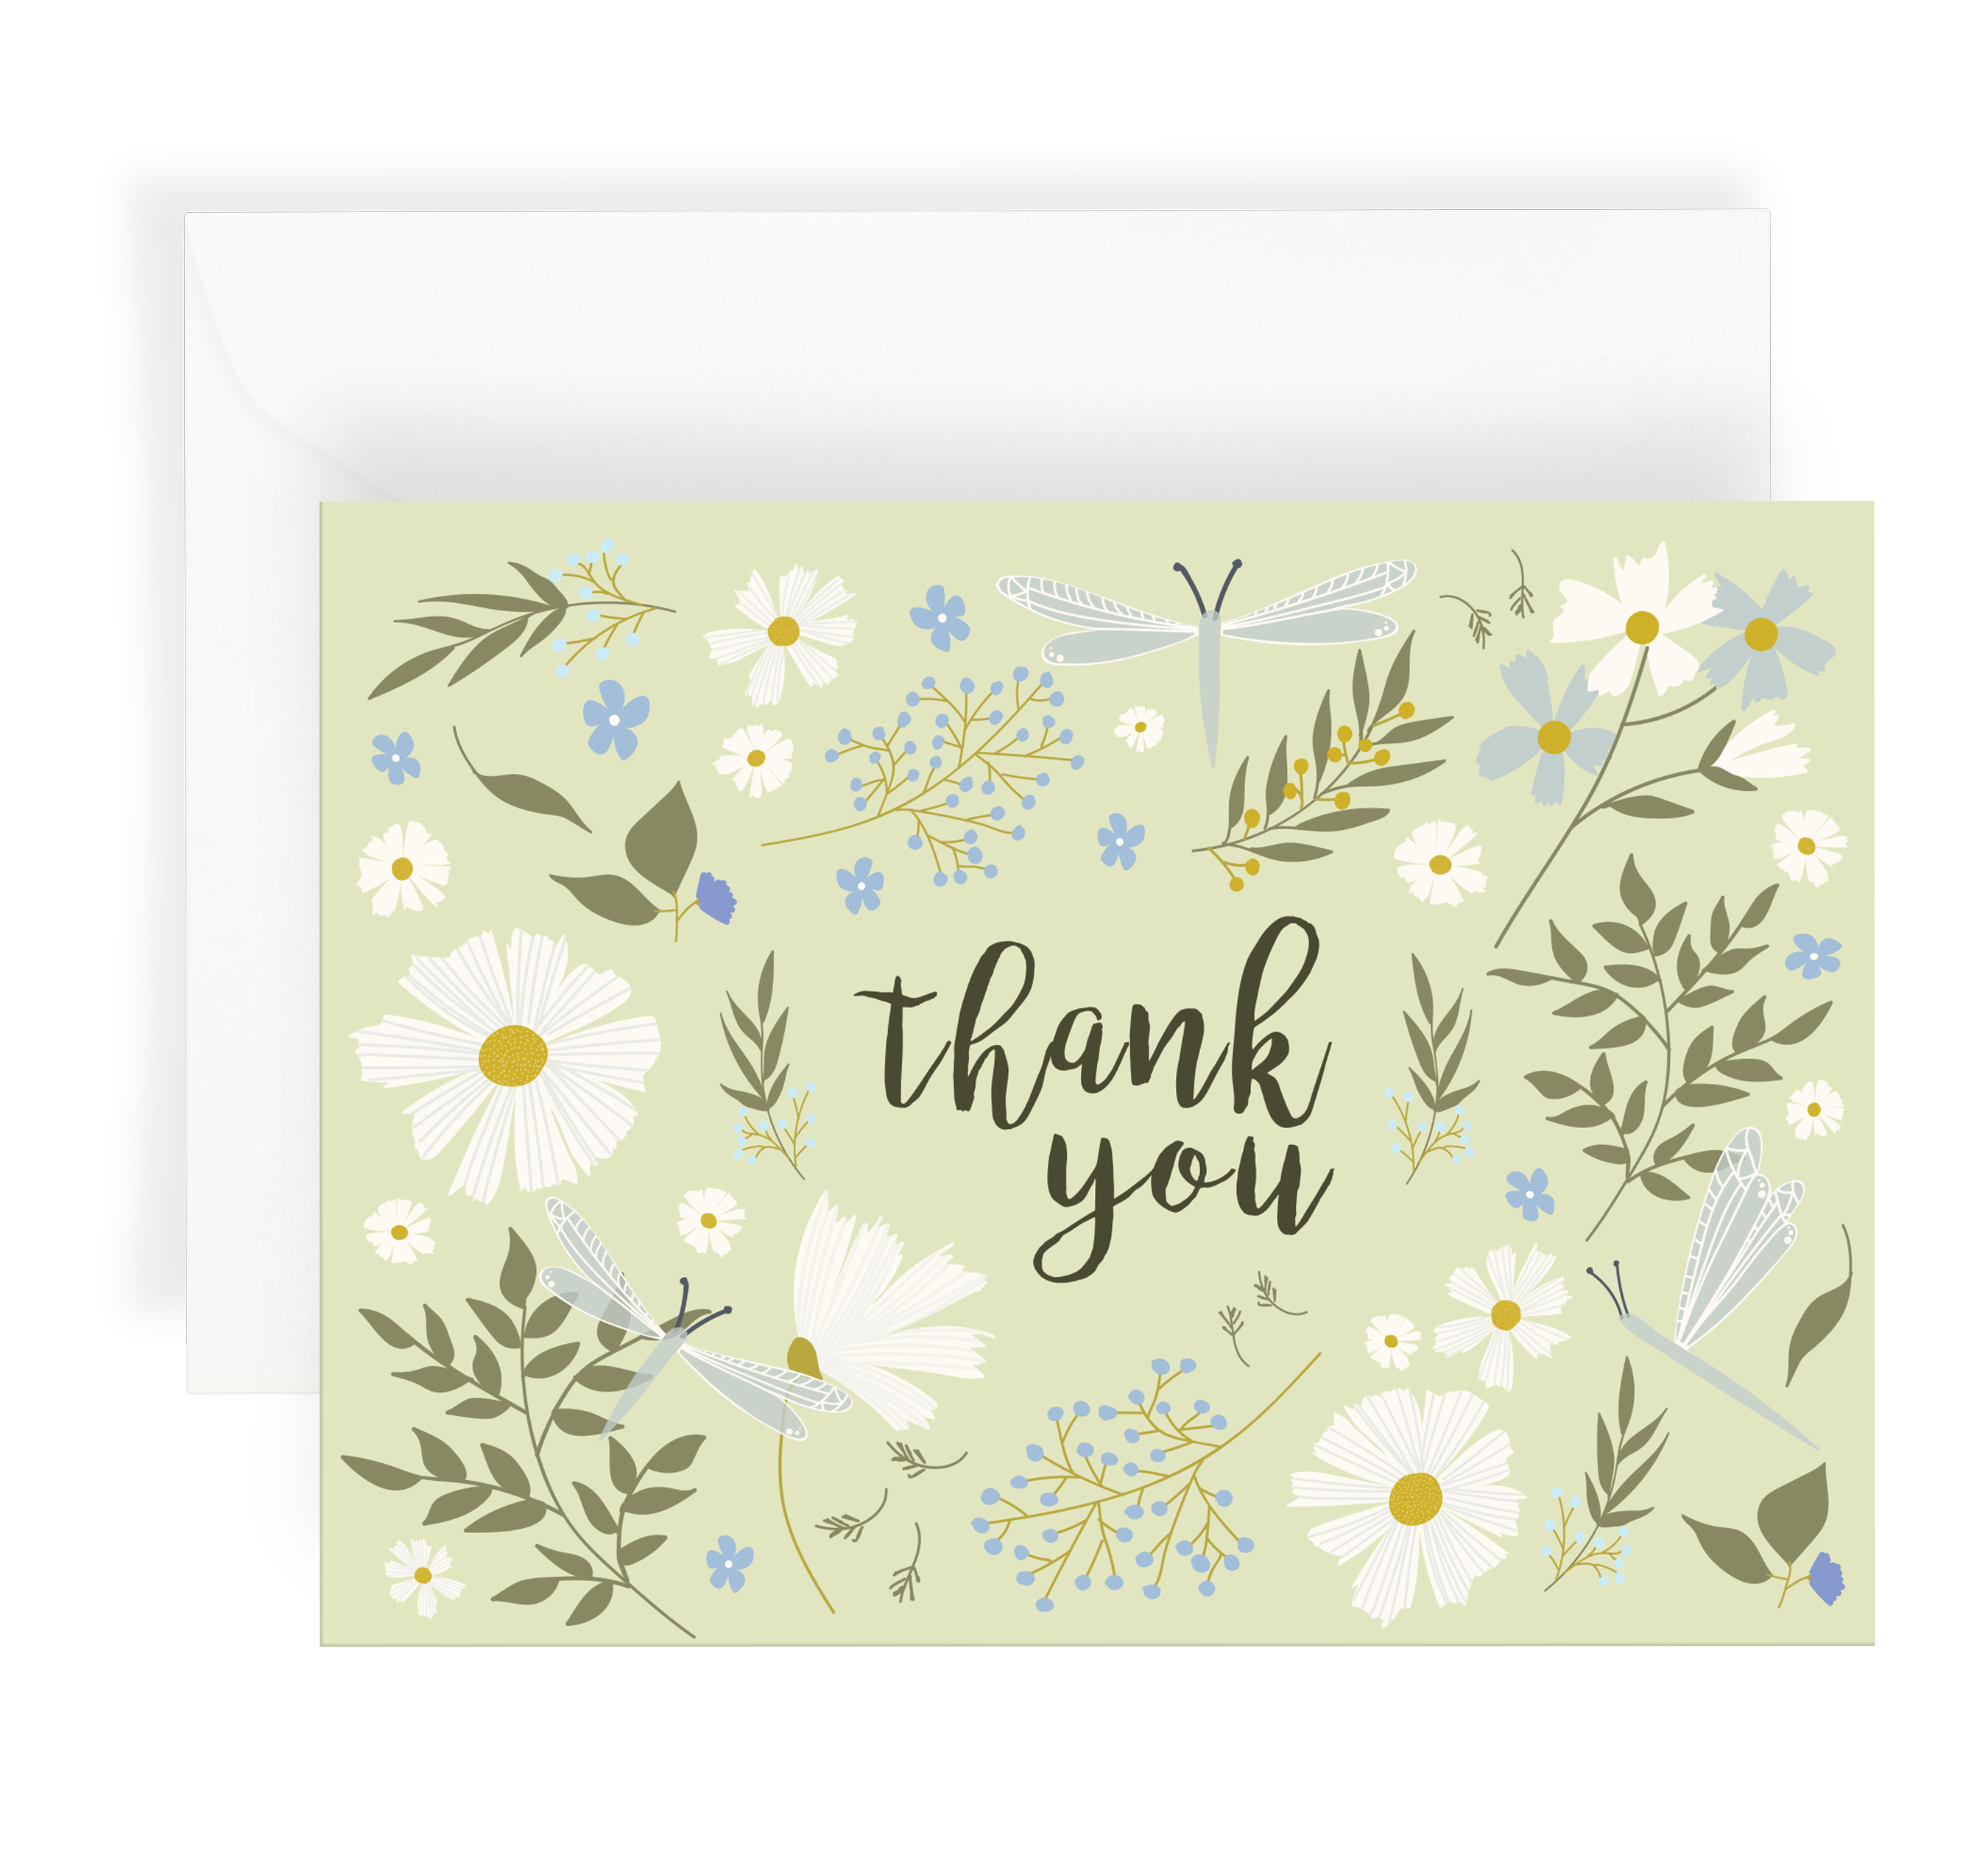 Illustrated greeting card with a lovely floral pattern including daisies and dragonflies on a pale green background. Text says 'Thank You'